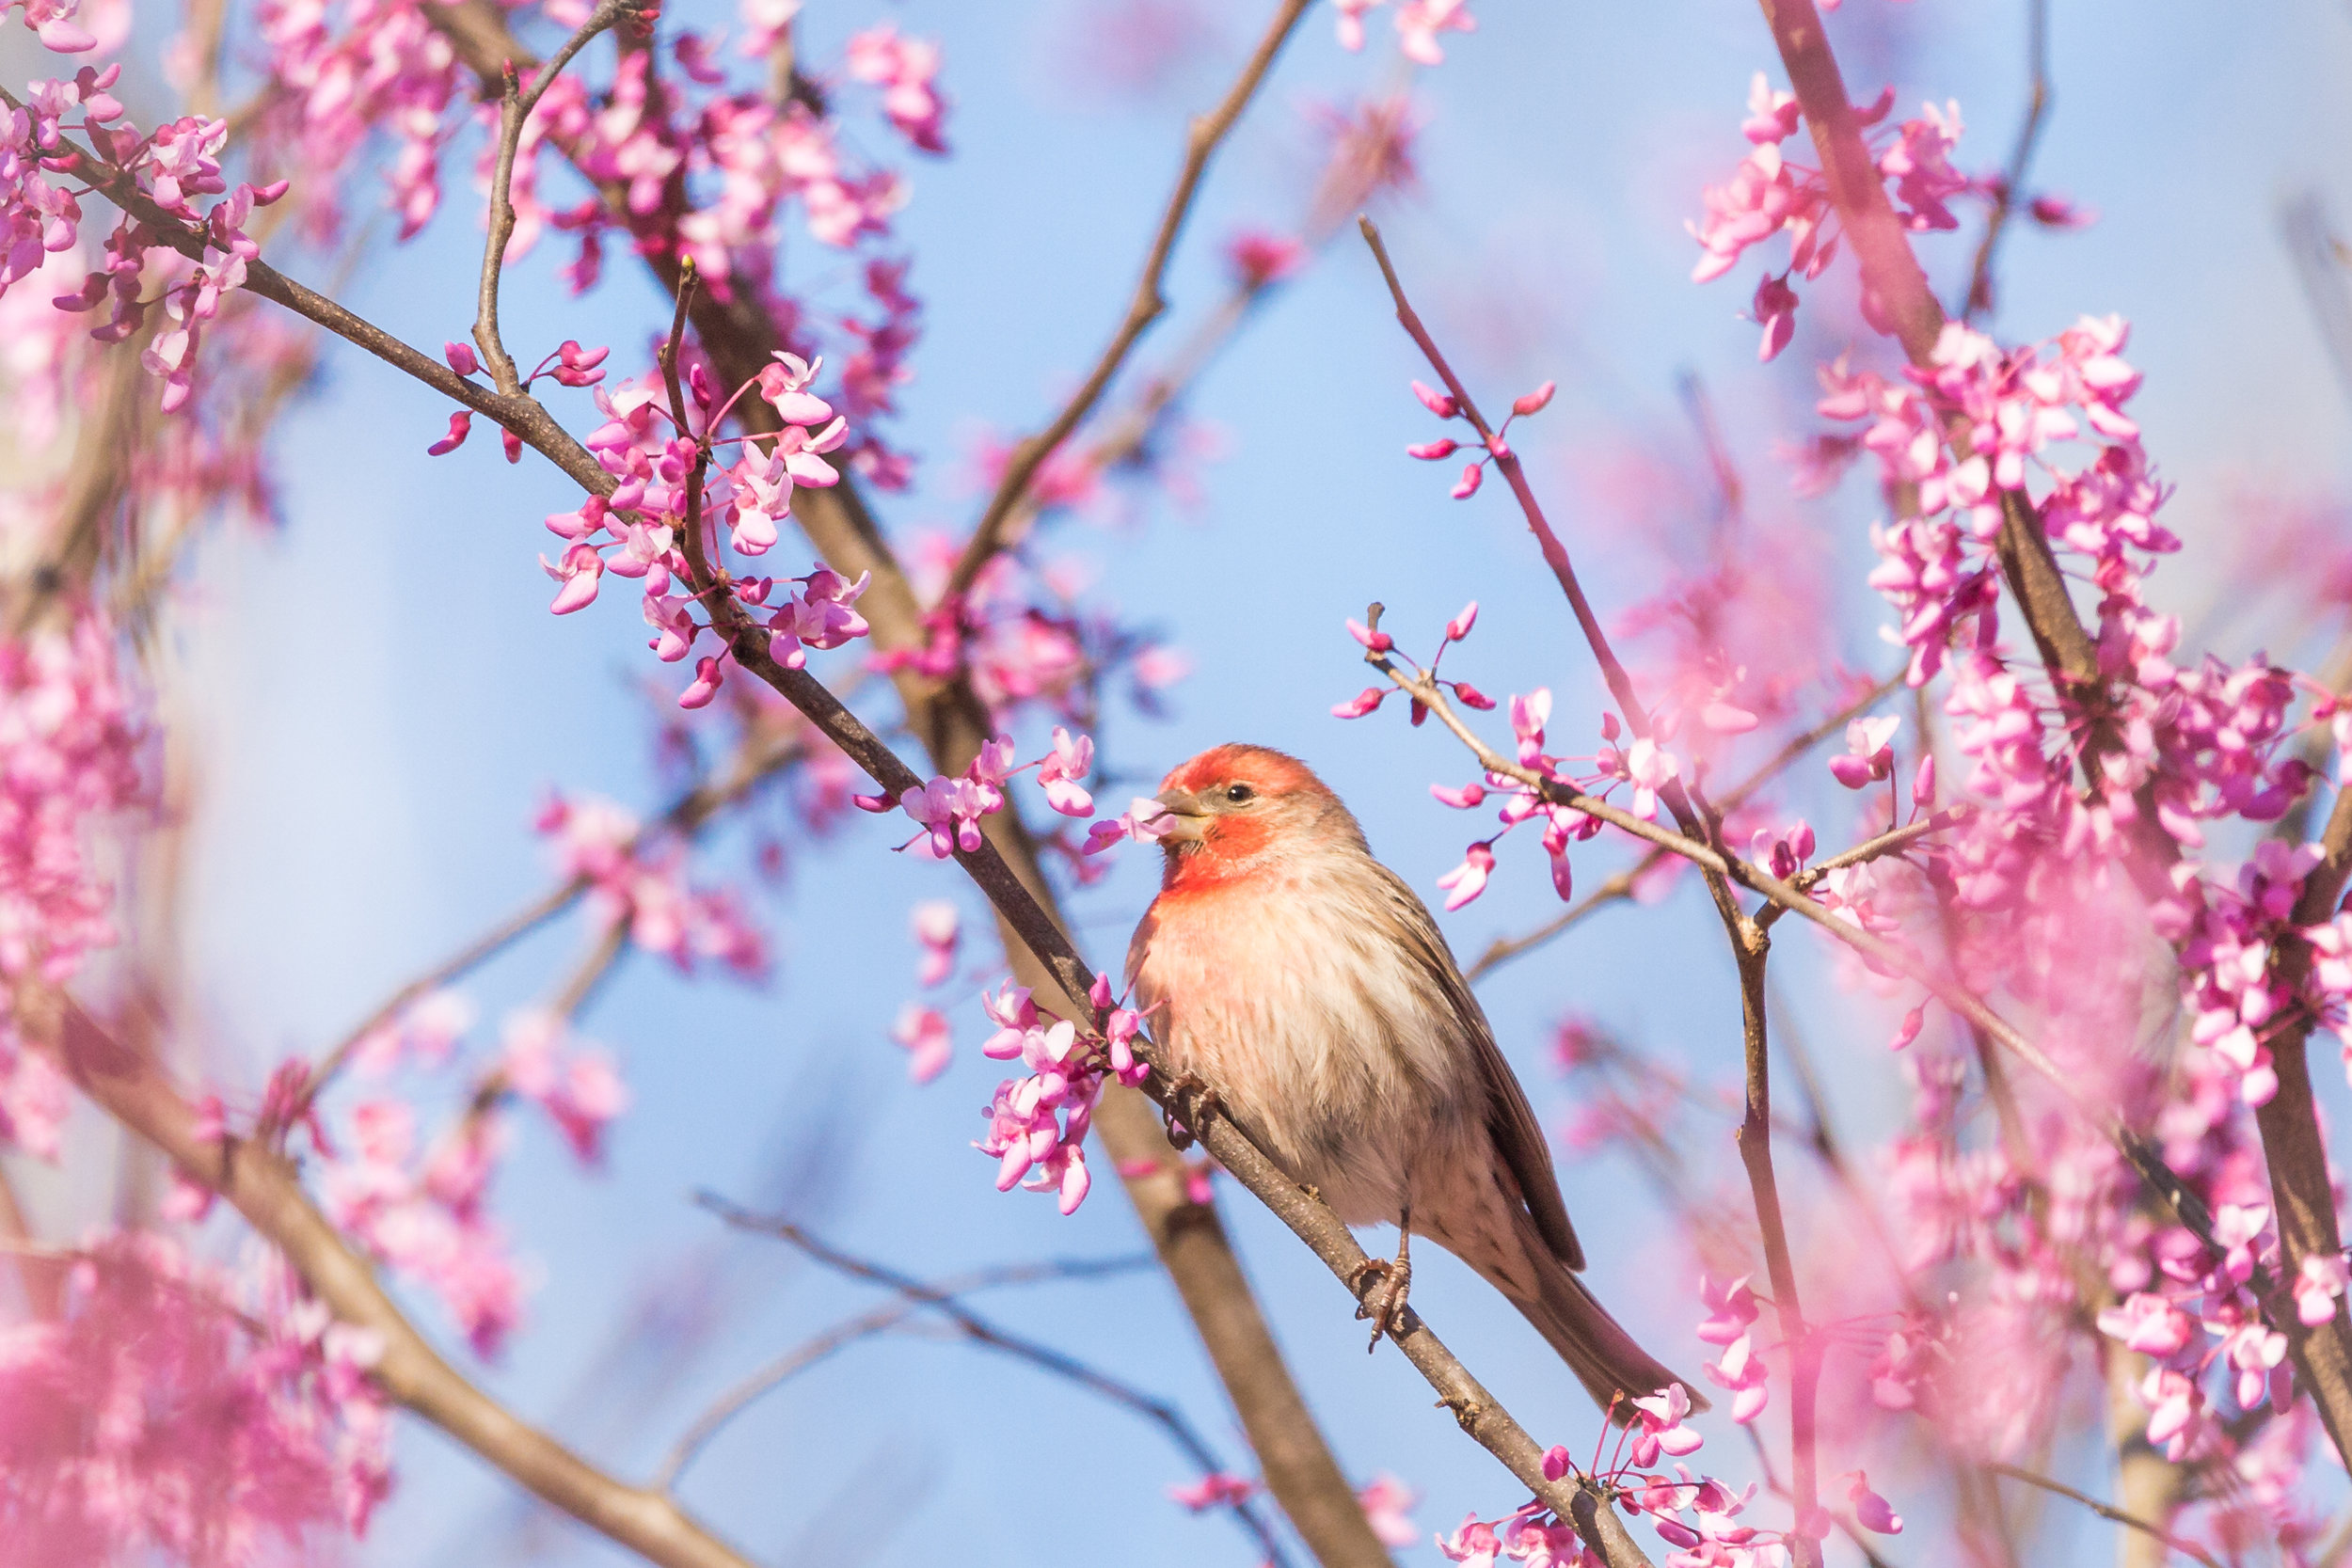 Finch in the Redbud